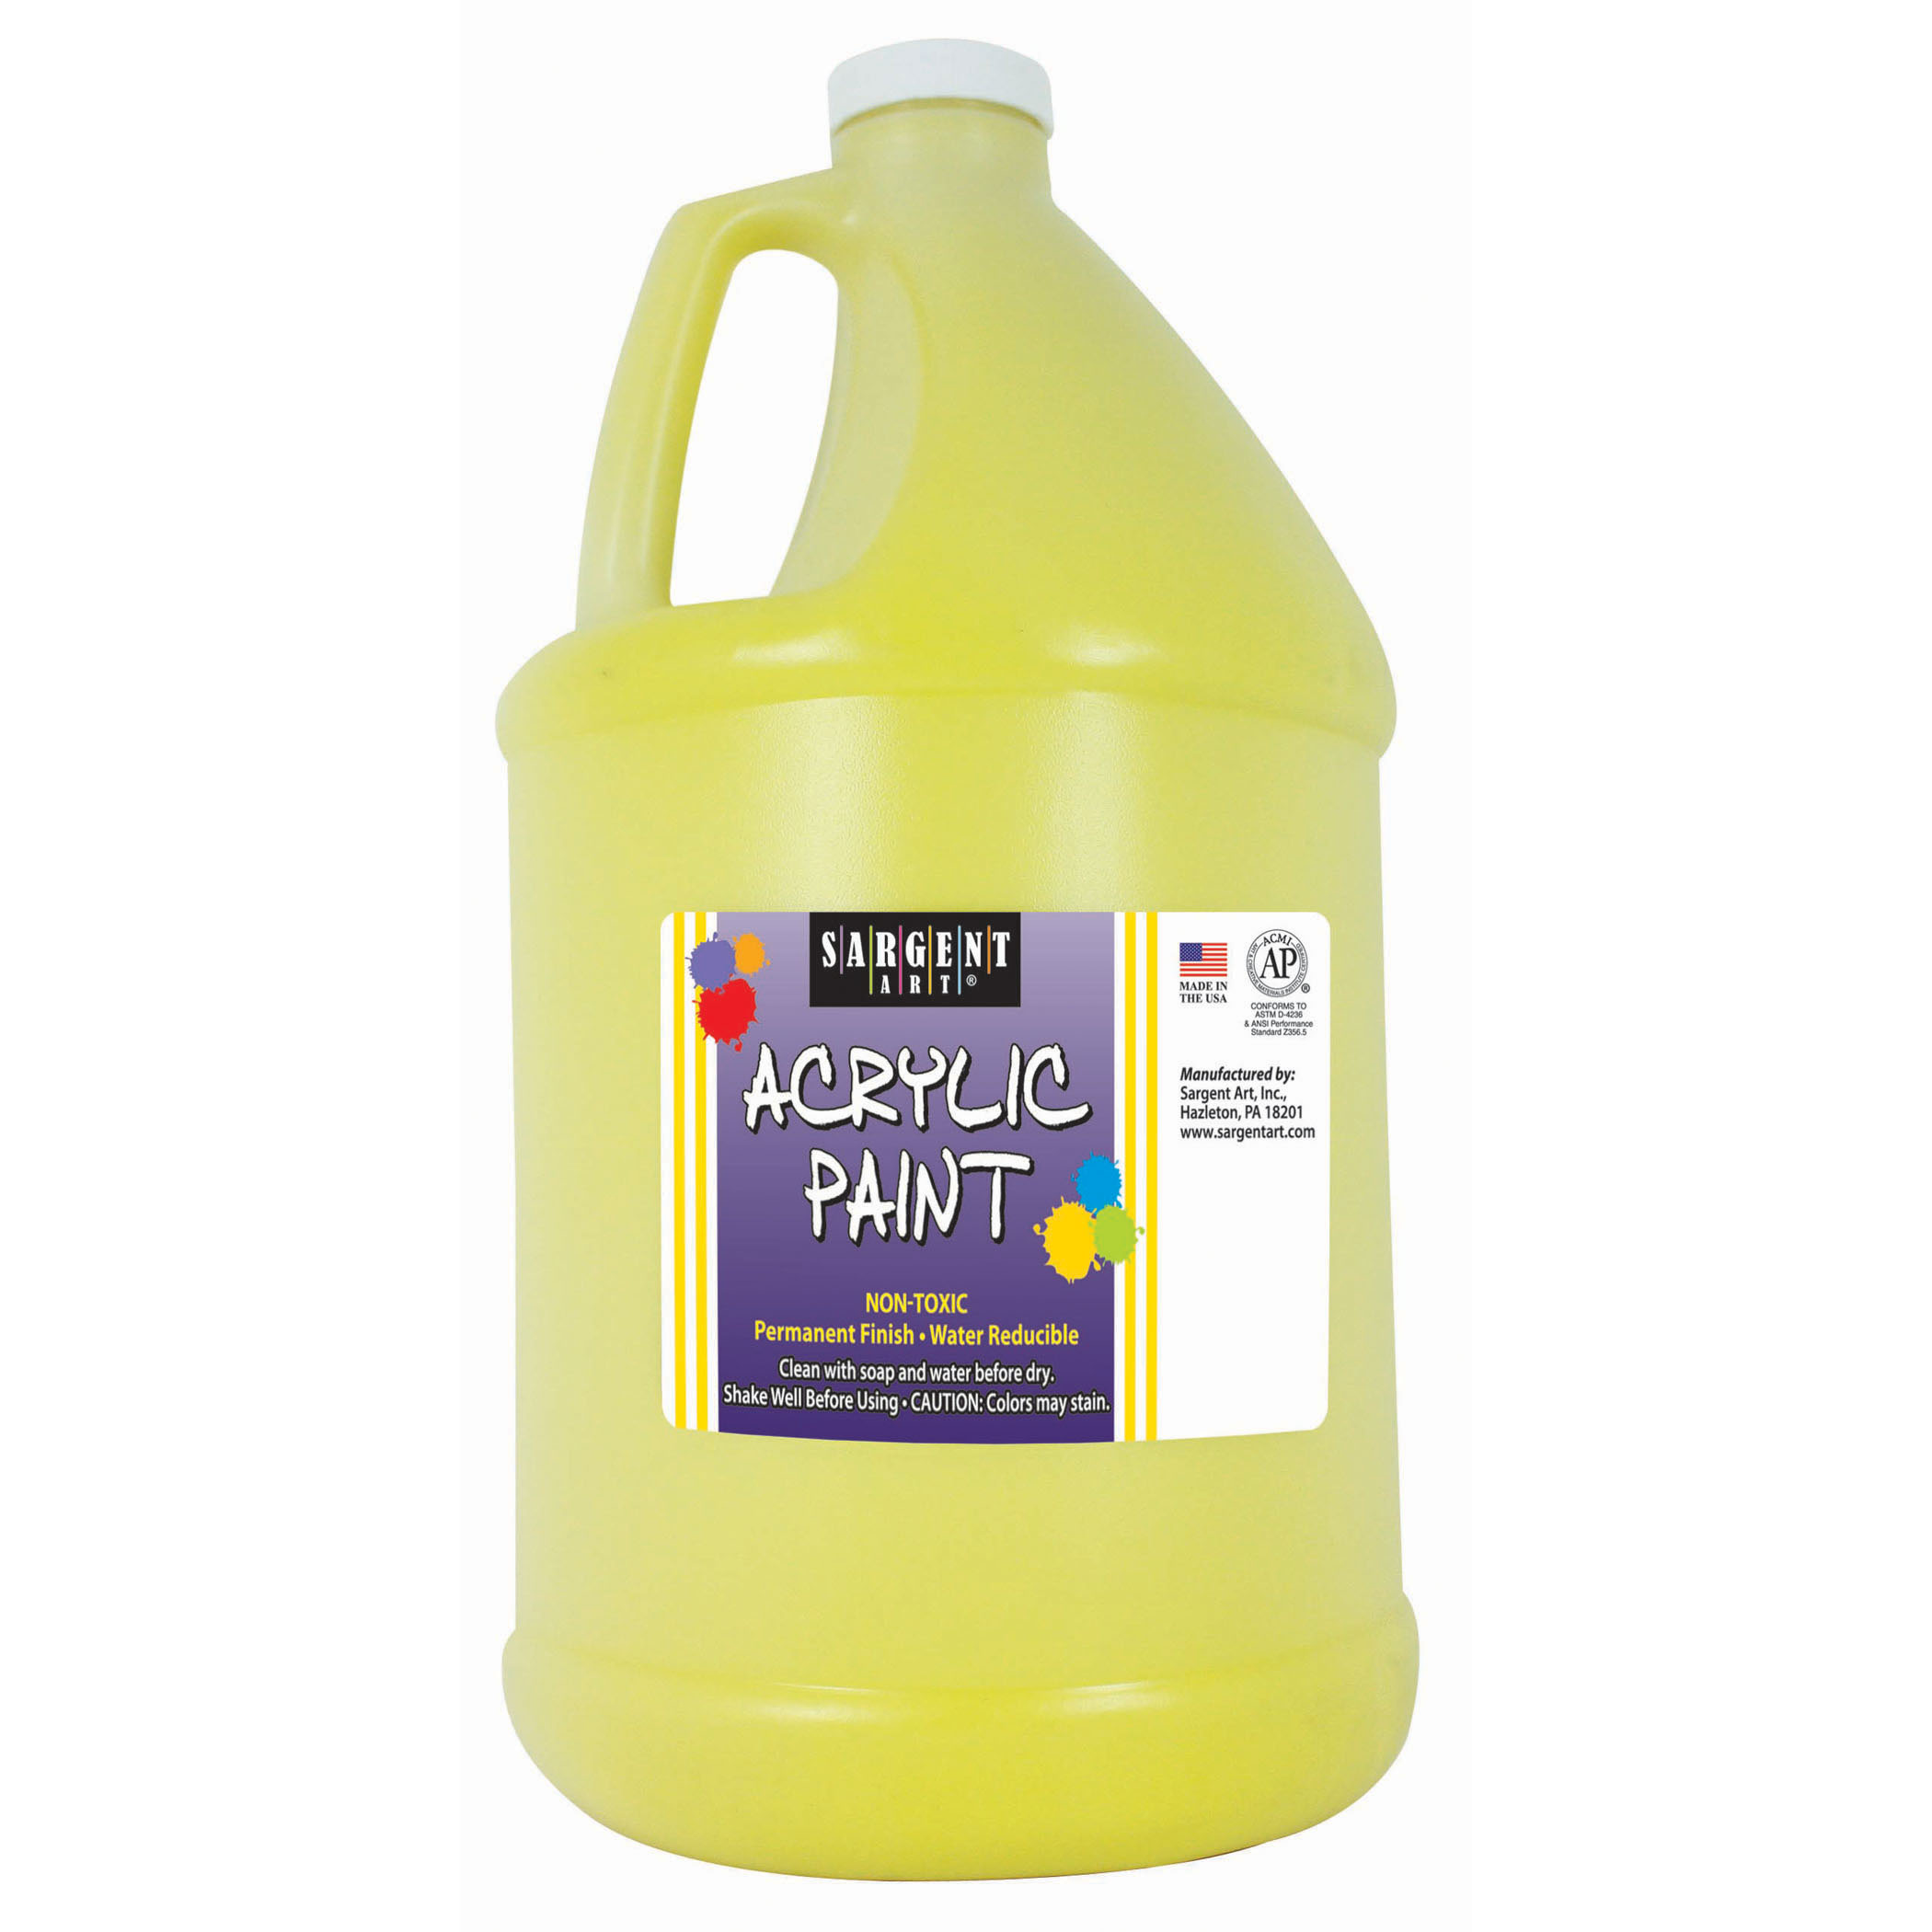 Sargent Art® Acrylic Paint, Yellow, 64 oz. Bottle (Half Gallon)